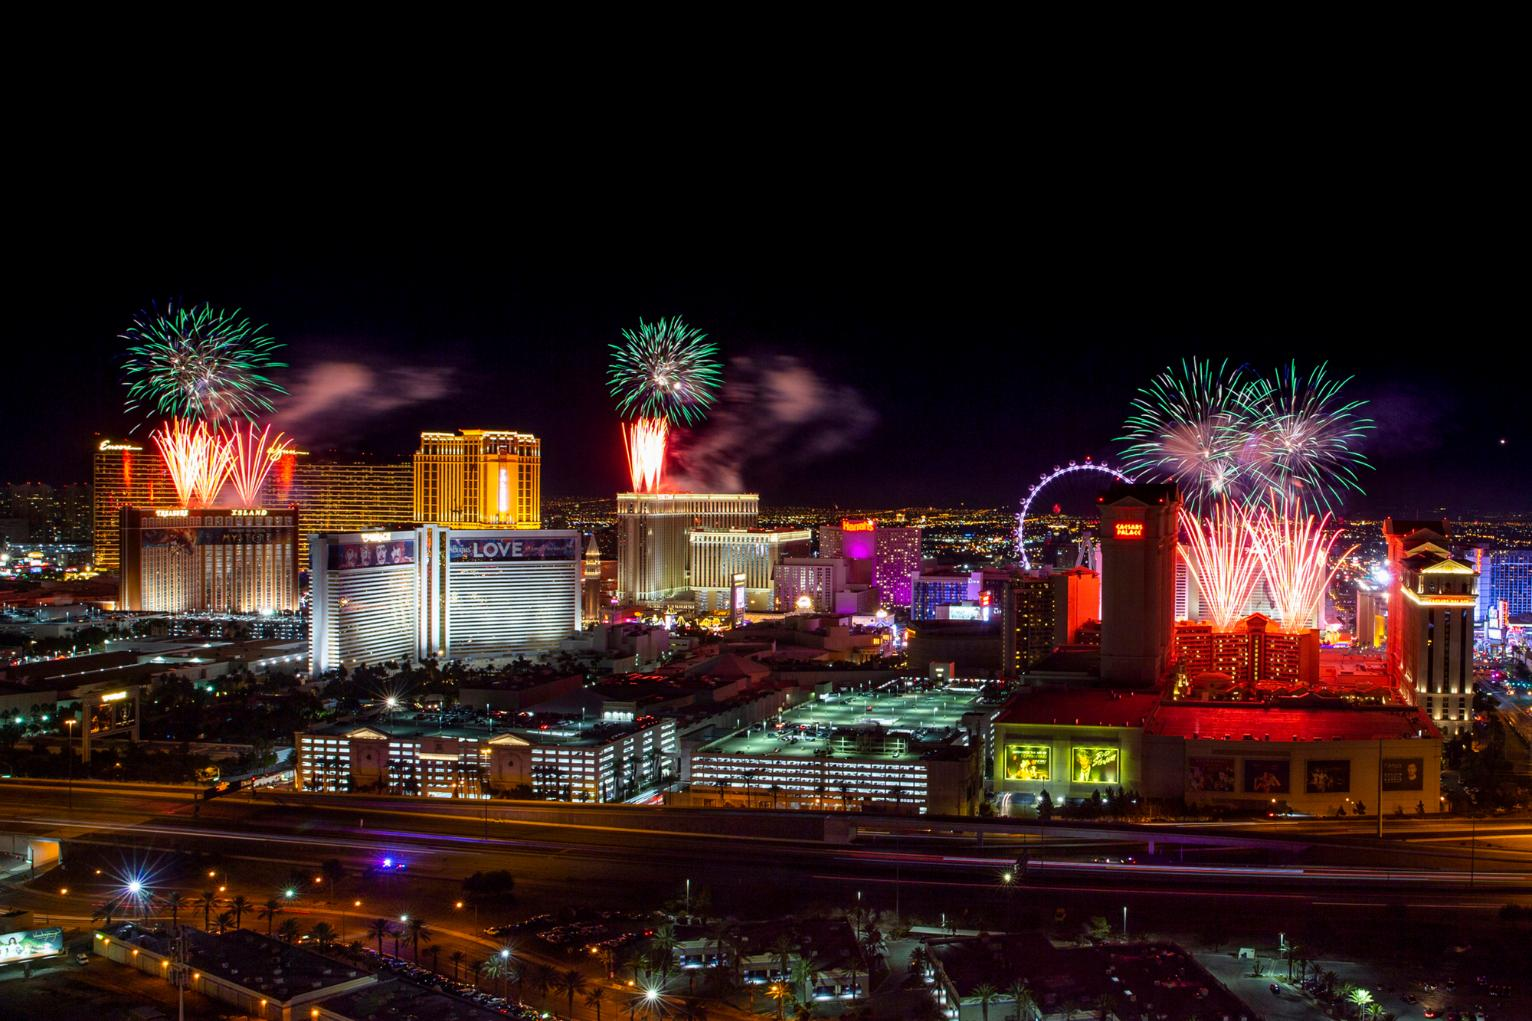 Coverings las vegas 2021 presidential betting what time can you bet on the kentucky derby